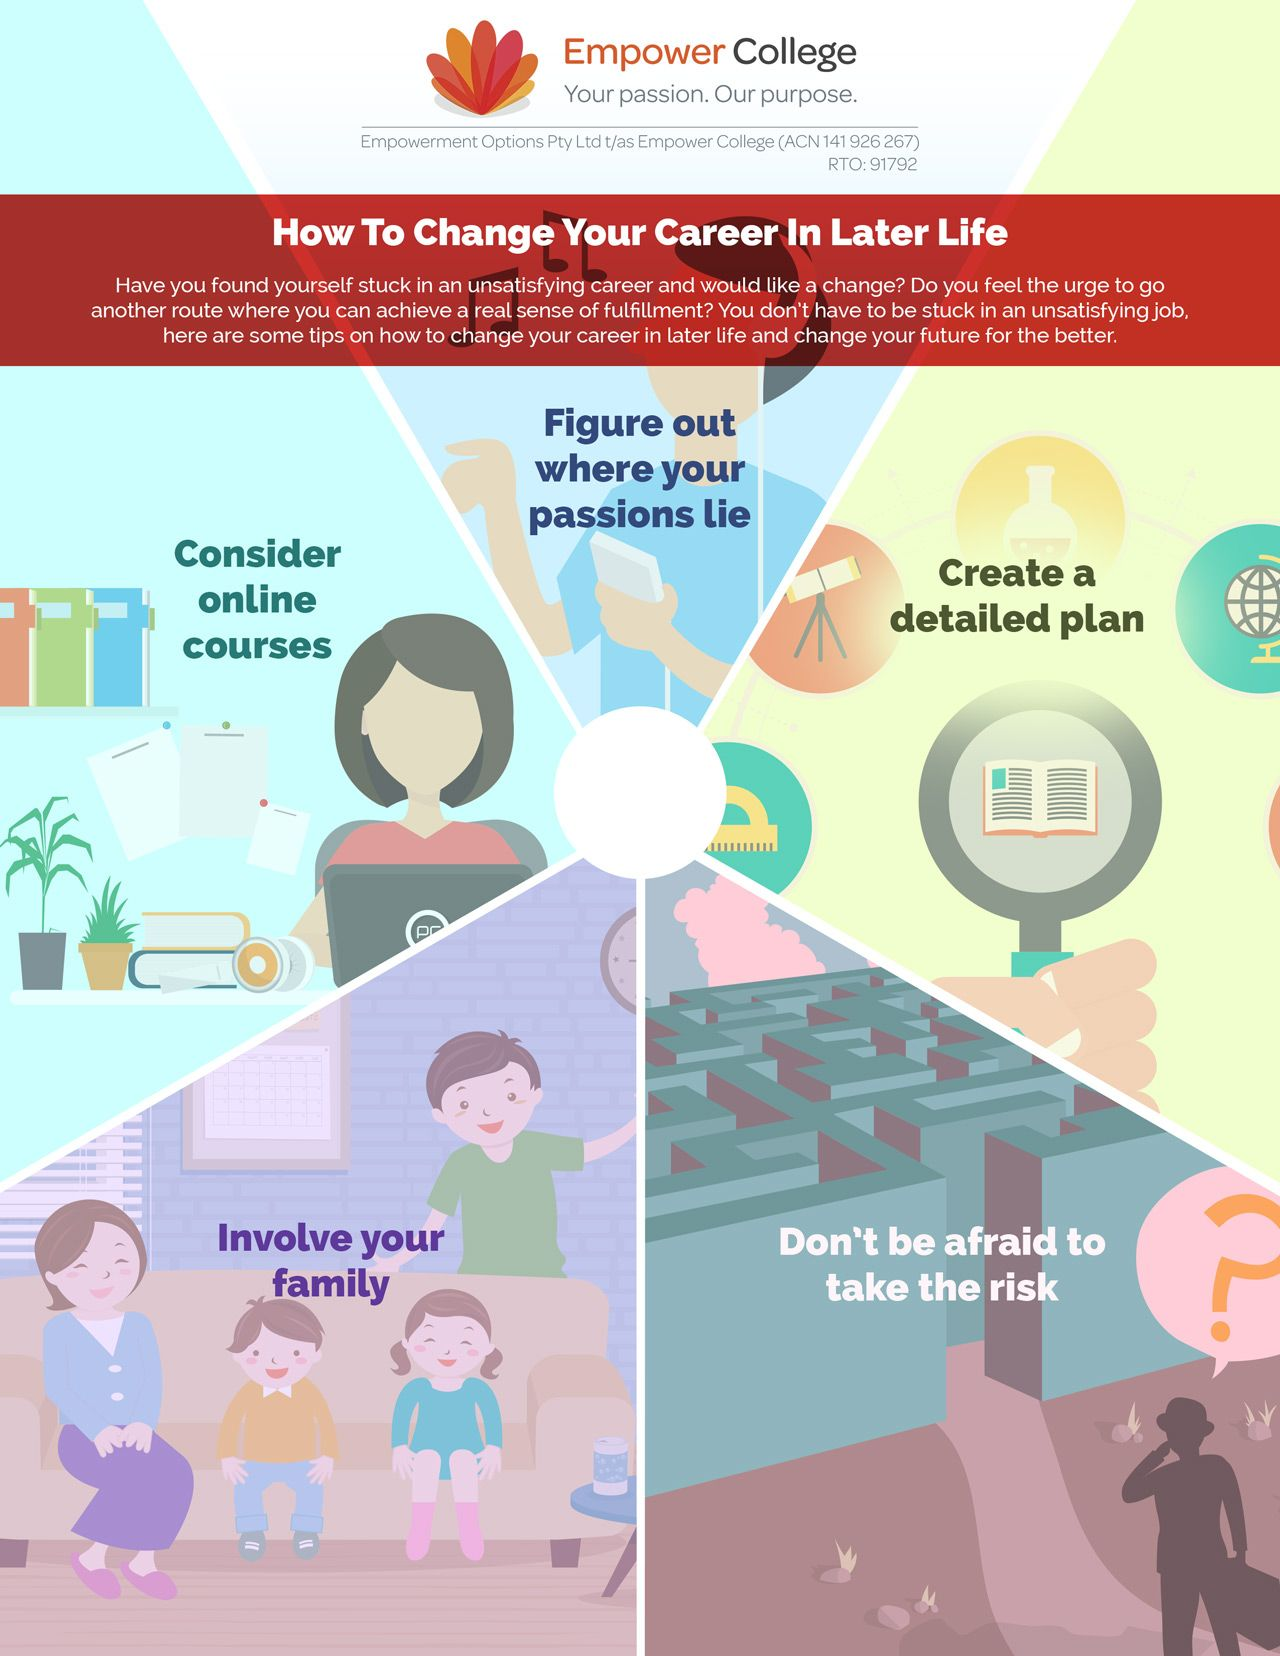 Thinking about a career change? Follow our top 5 tips on how to change your career in later life and change your future for the better! #goforit #dreambig #empowercollege #student #maturestudent